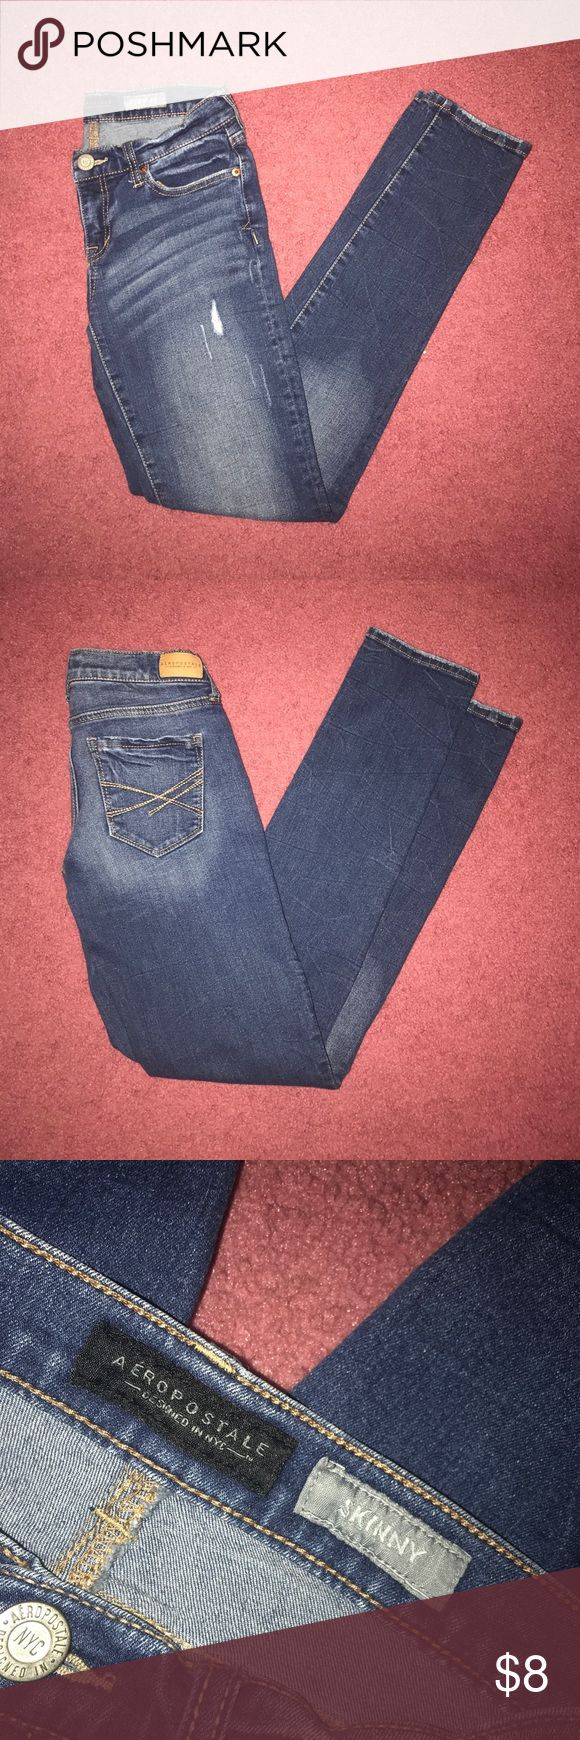 Dark Wash Distressed Skinny Jeans Aeropostale Skinny Jeans Slightly distressed, some distressing on leg openings and back pockets. Some fading on front and back (as shown). Comfortable. 75% cotton, 18% polyester, 6% rayon, 1% spandex. True to size, have a lower rise and snug fit. Super versatile, a staple item for any closet! Decent condition.  *OPEN TO OFFERS*  Size: 2 Regular  Measurements given upon request  📦 private discounts when you bundle  📫 ships the same to next day 💲 all offers…